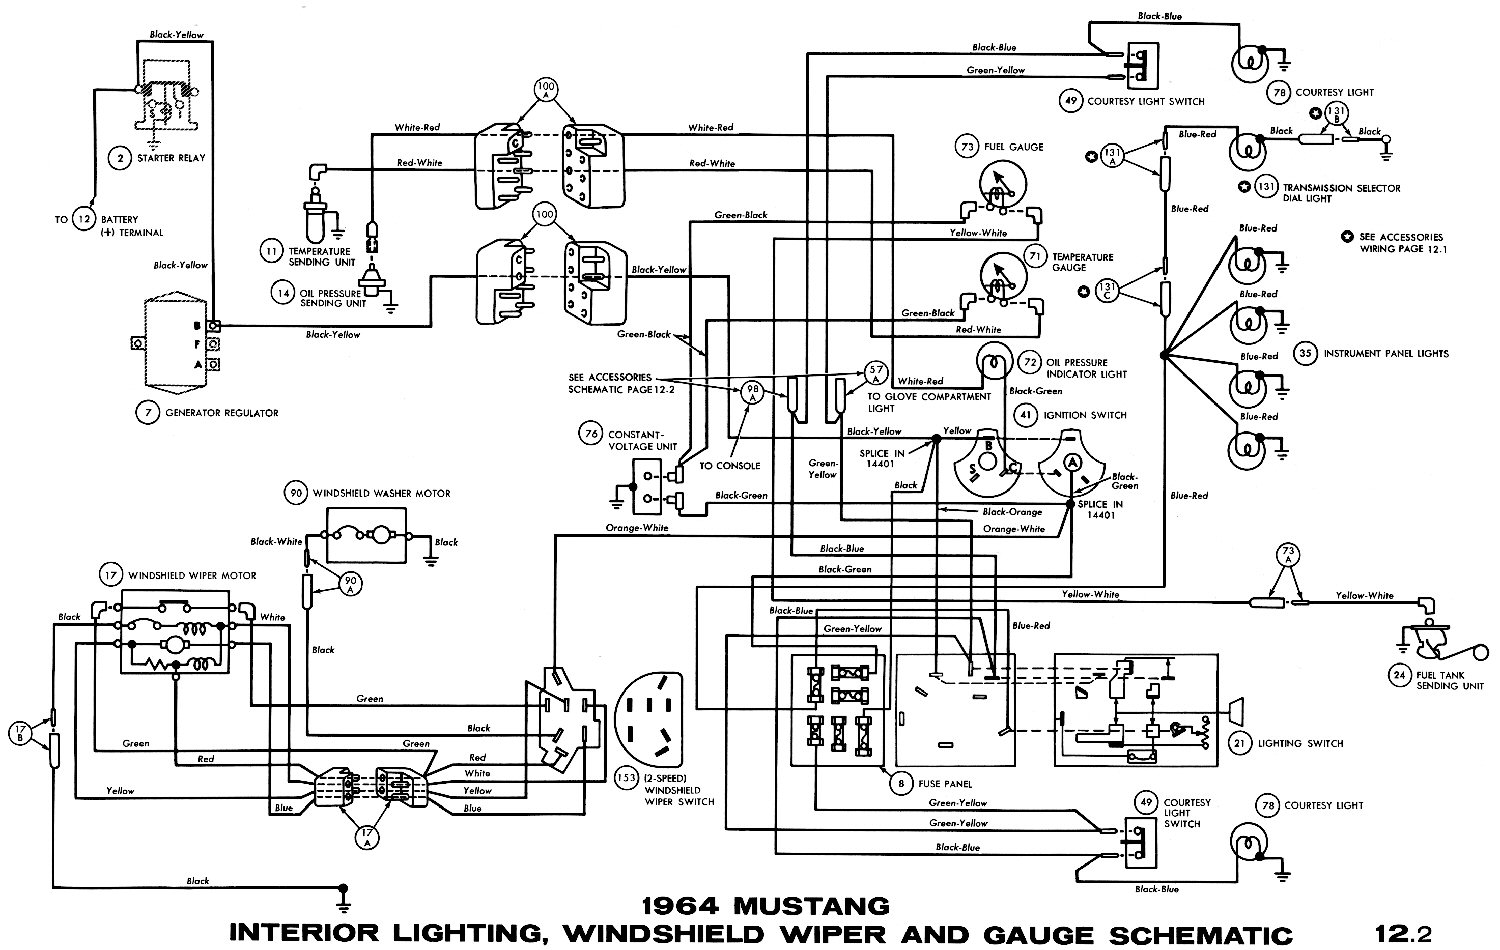 1964k wiring diagram for 1970 ford mustang readingrat net 1966 mustang headlight wiring diagram at readyjetset.co